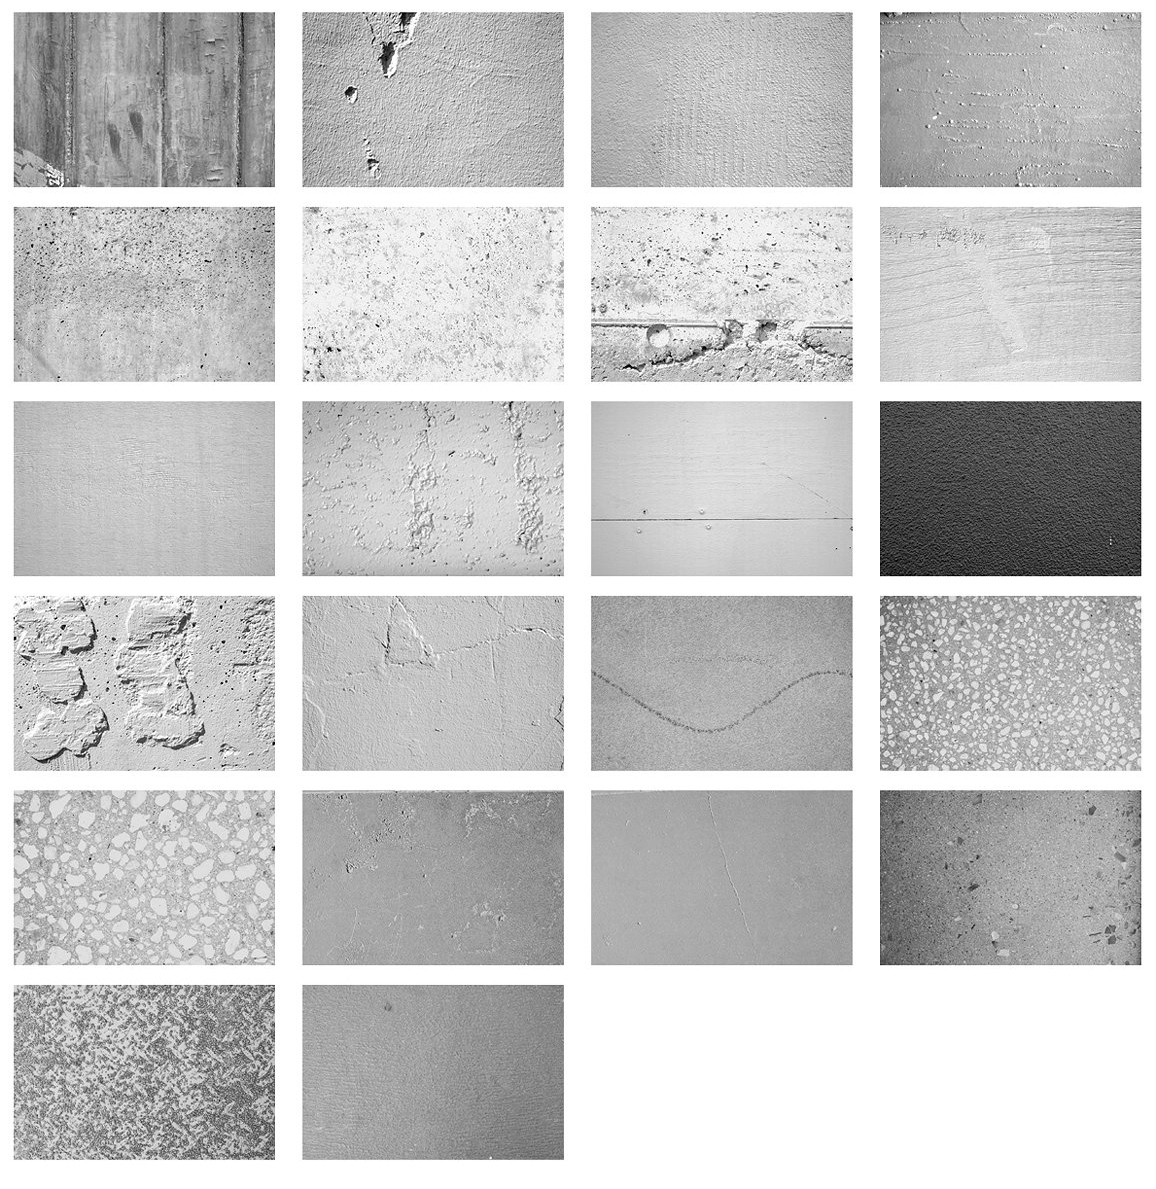 50 Cement Textures Mega Pack example image 3